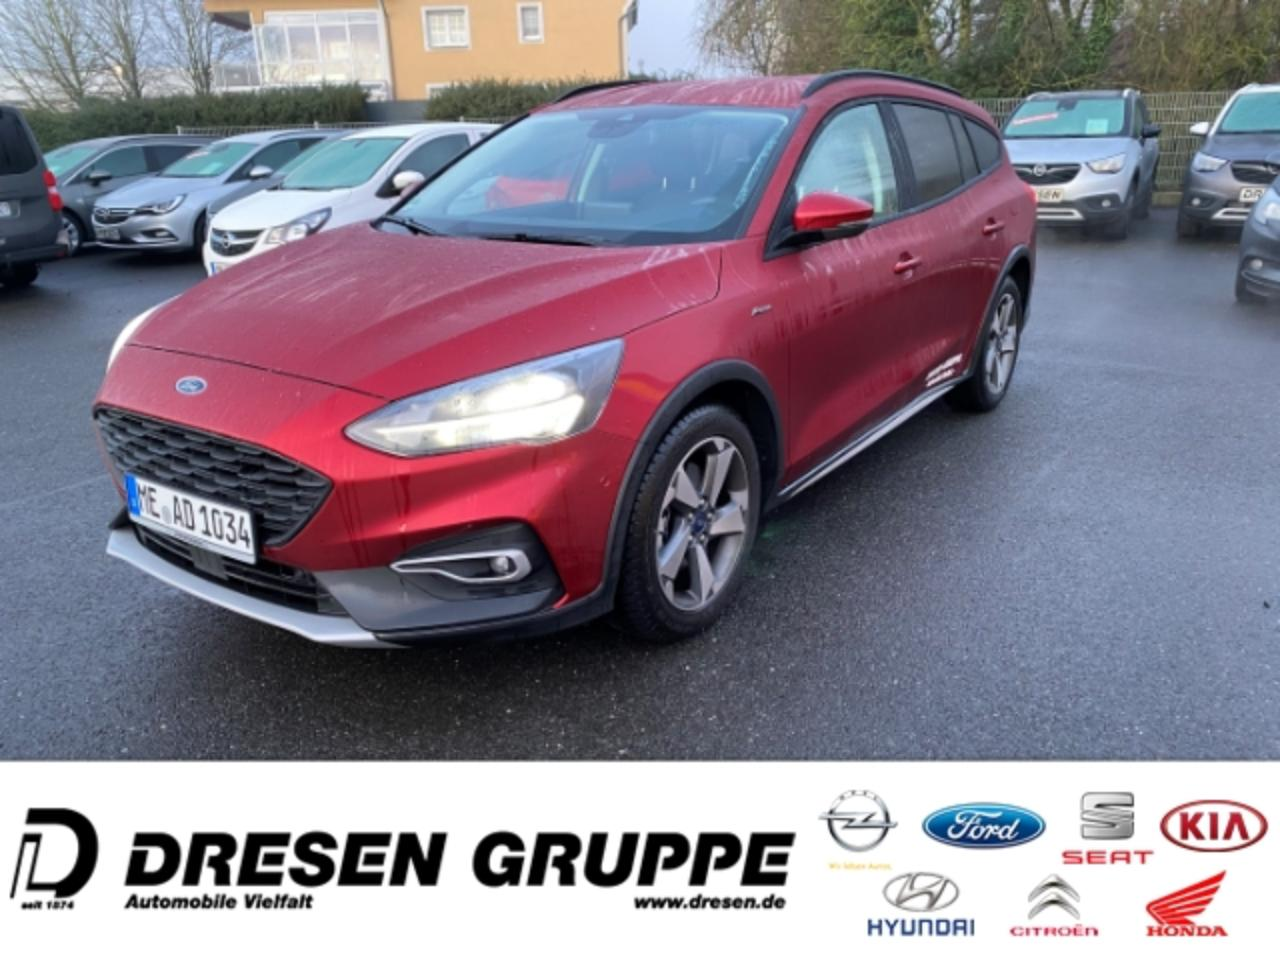 Ford Focus Turnier Active 1.5 Navi+DAB+Kamera+LED